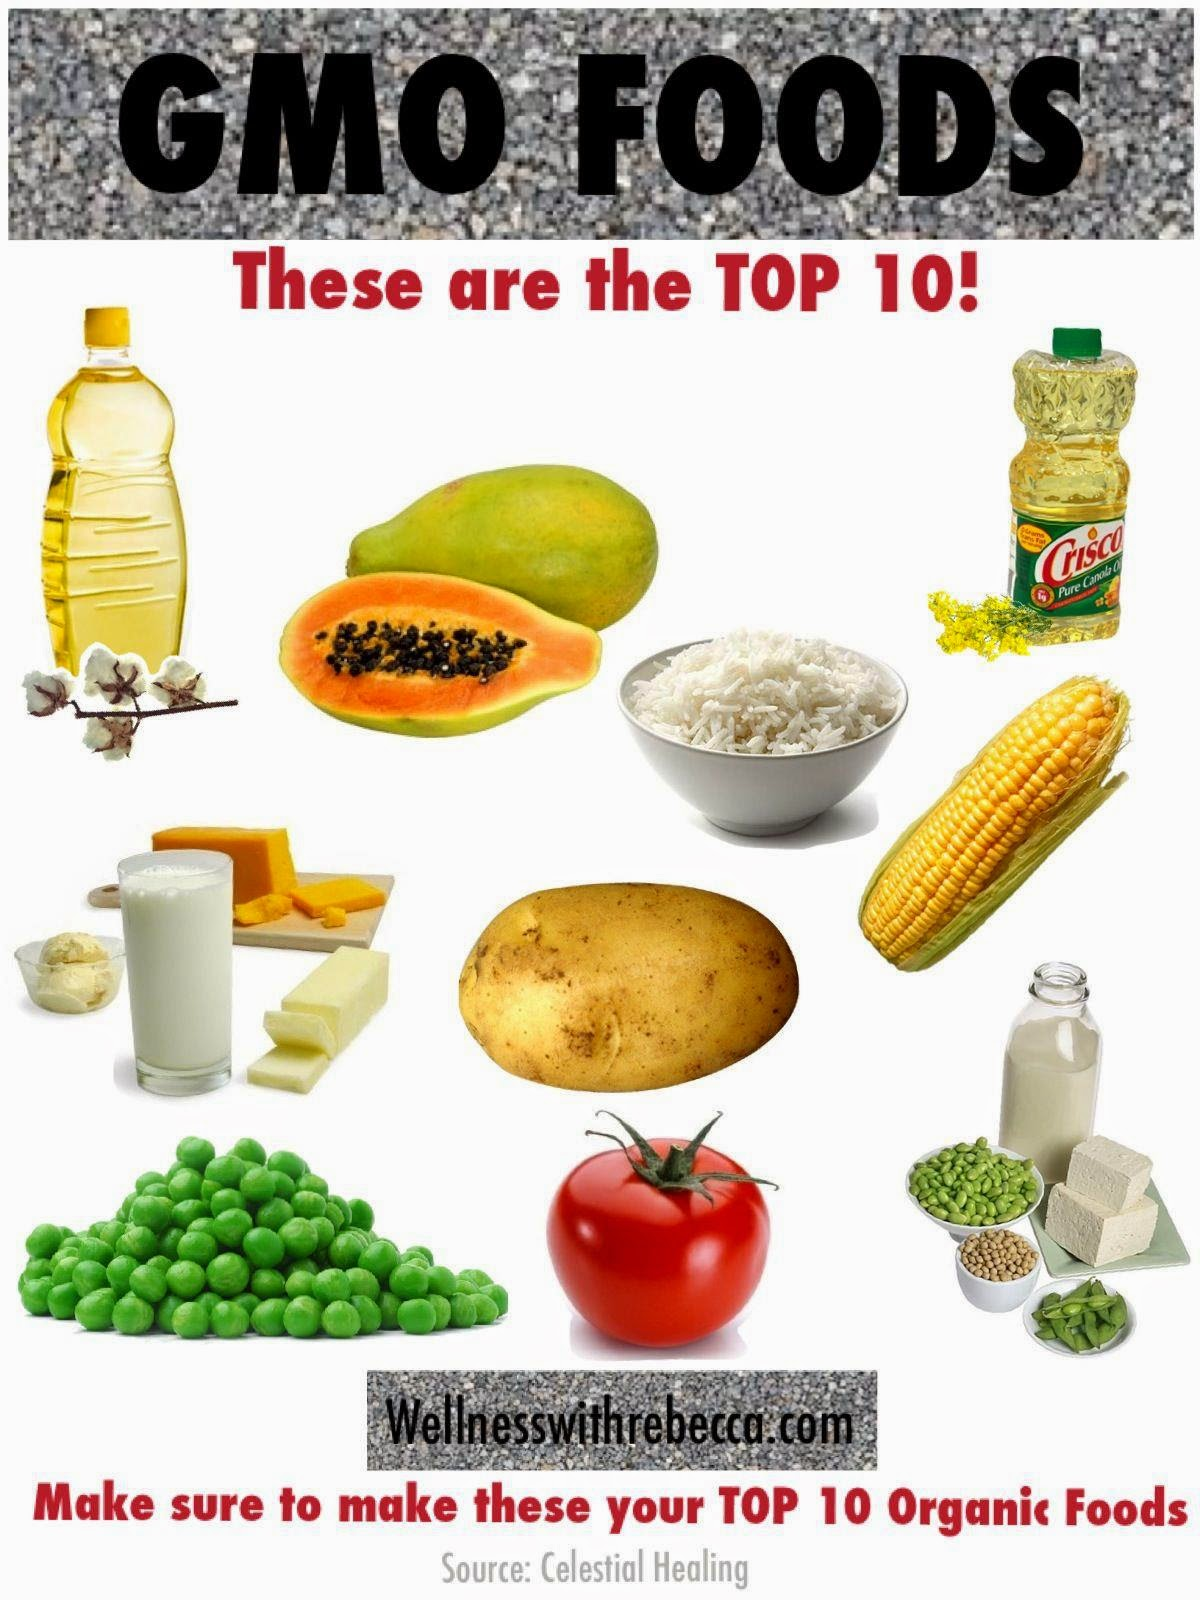 las 432 genetically modified foods Food products containing genetically modified (gm) ingredients have entered the market over the past decade the biotech industry and environmental groups have.